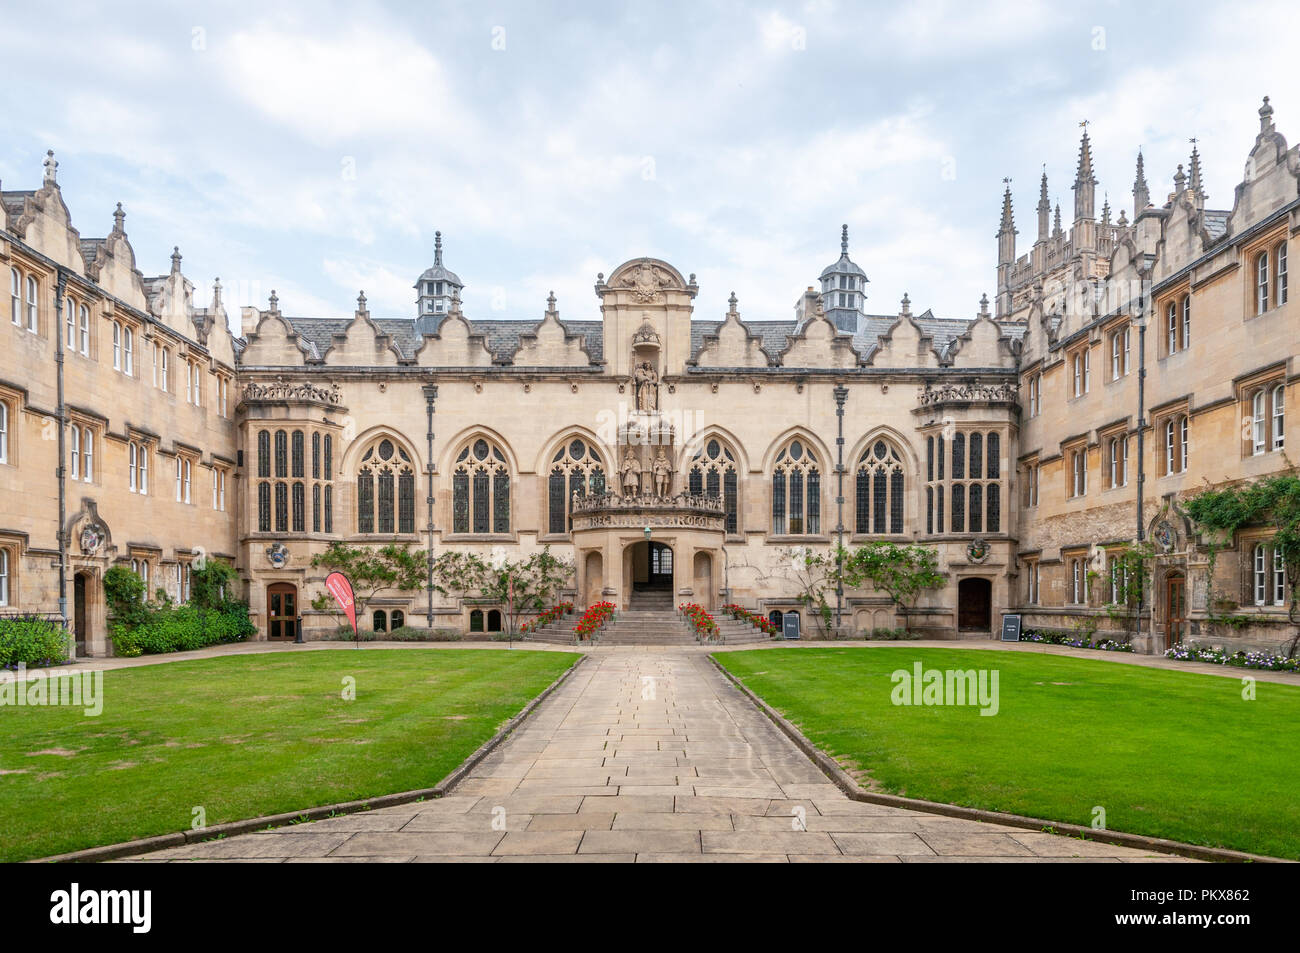 Oriel College - Stock Image